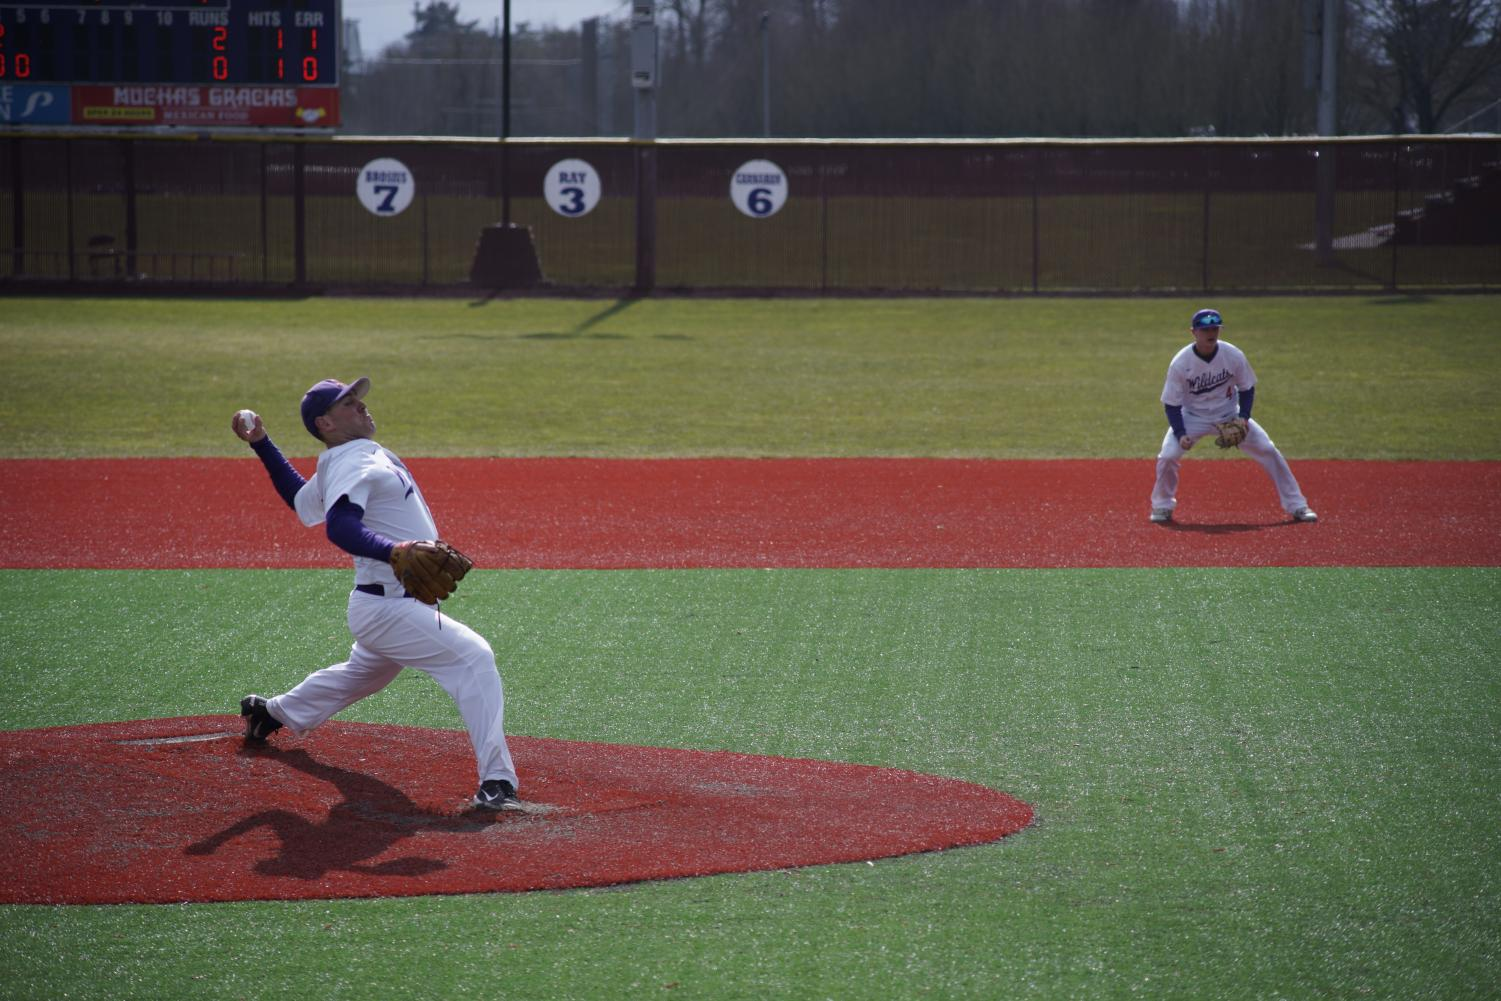 Cason Cunningham, '19, winding up his pitch in game one of the Willamette Bearcats series with Alec Cook, '19, on first base.